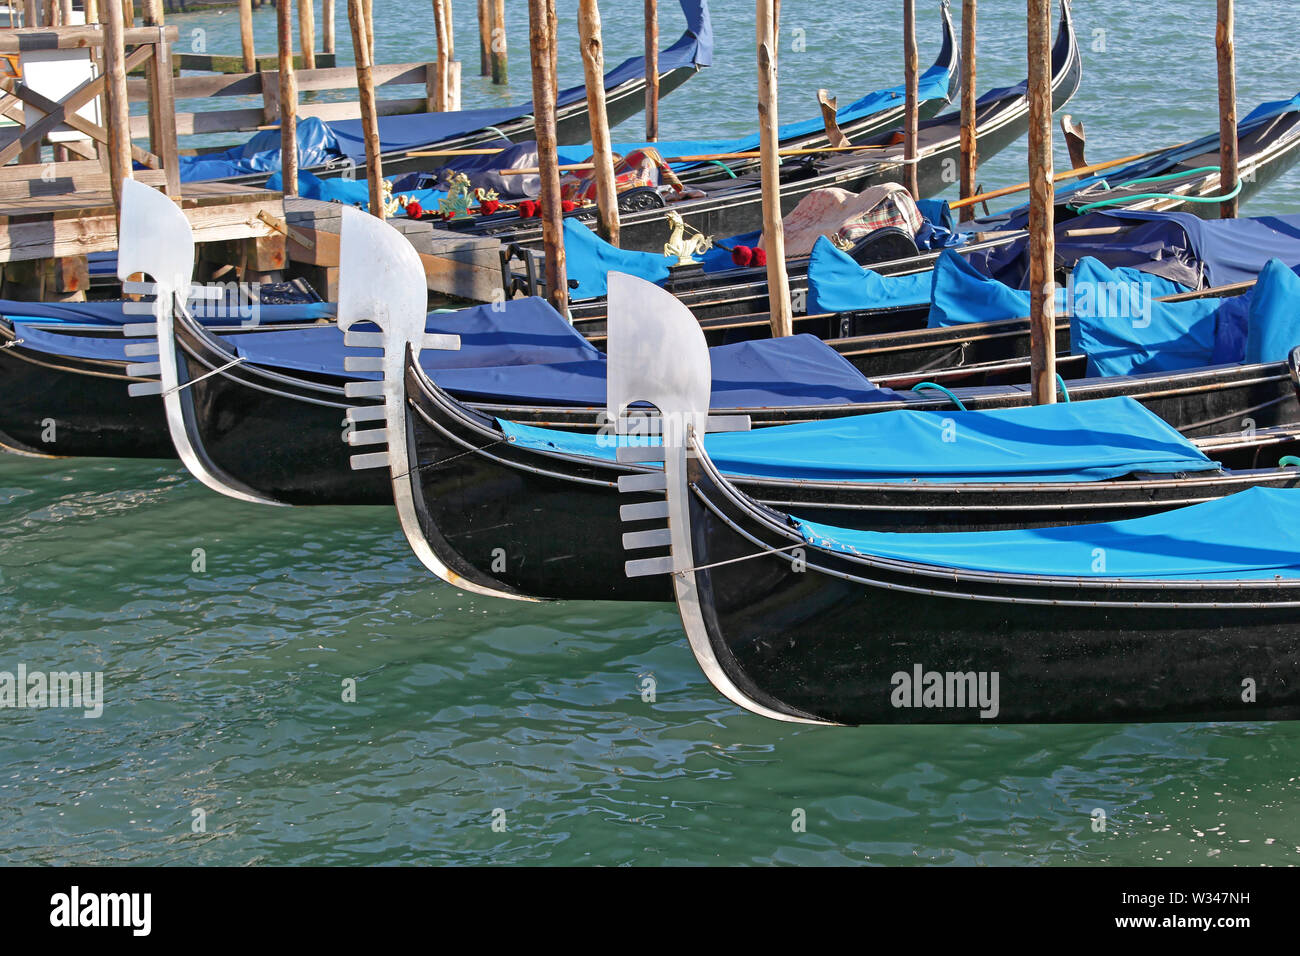 Moored Gondolas at Canal in Venice Italy - Stock Image